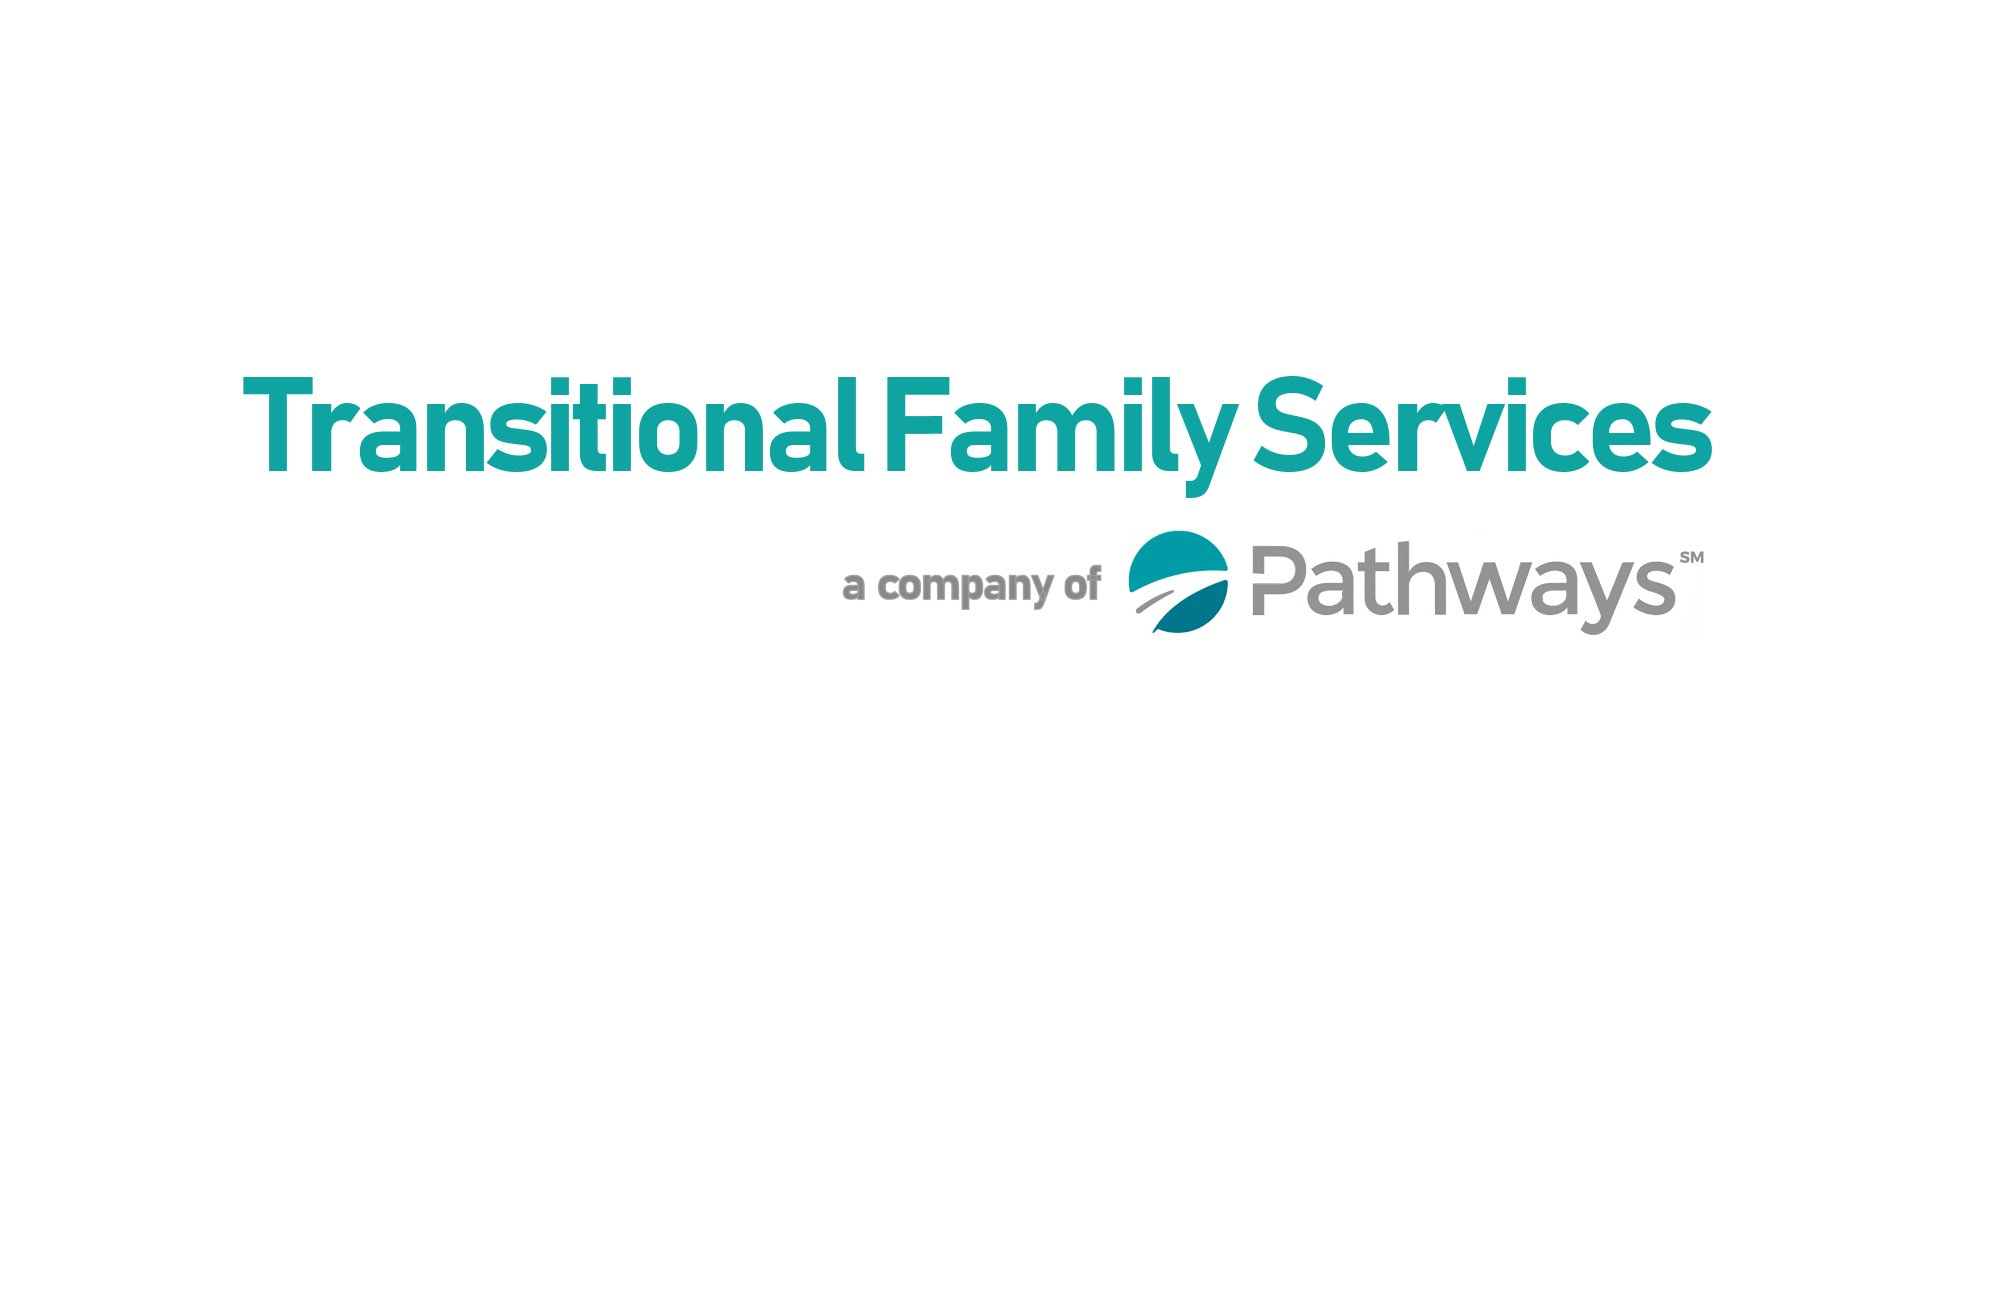 Transitional Family Services